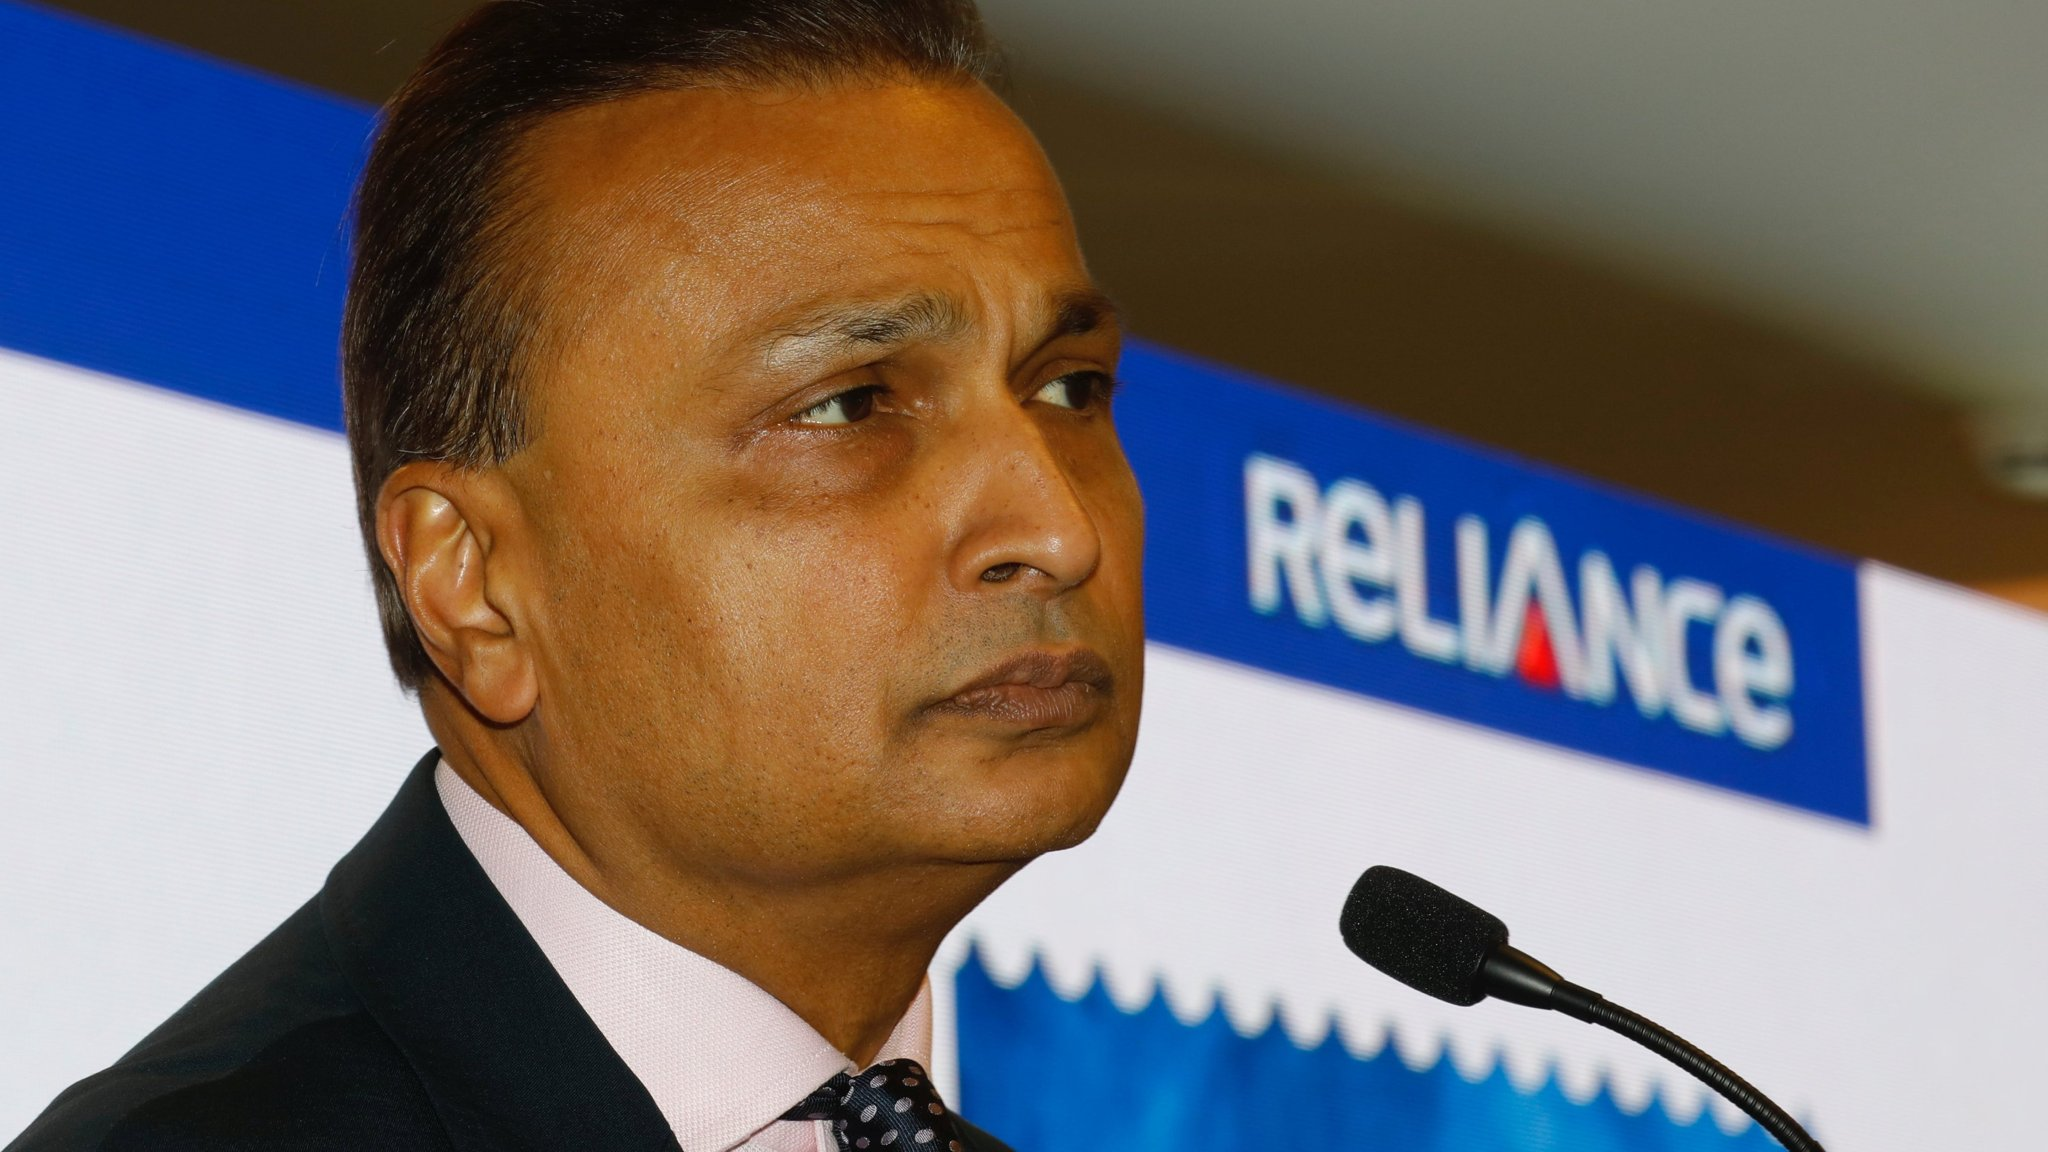 Reliance Communications reaches agreement on $7bn debt